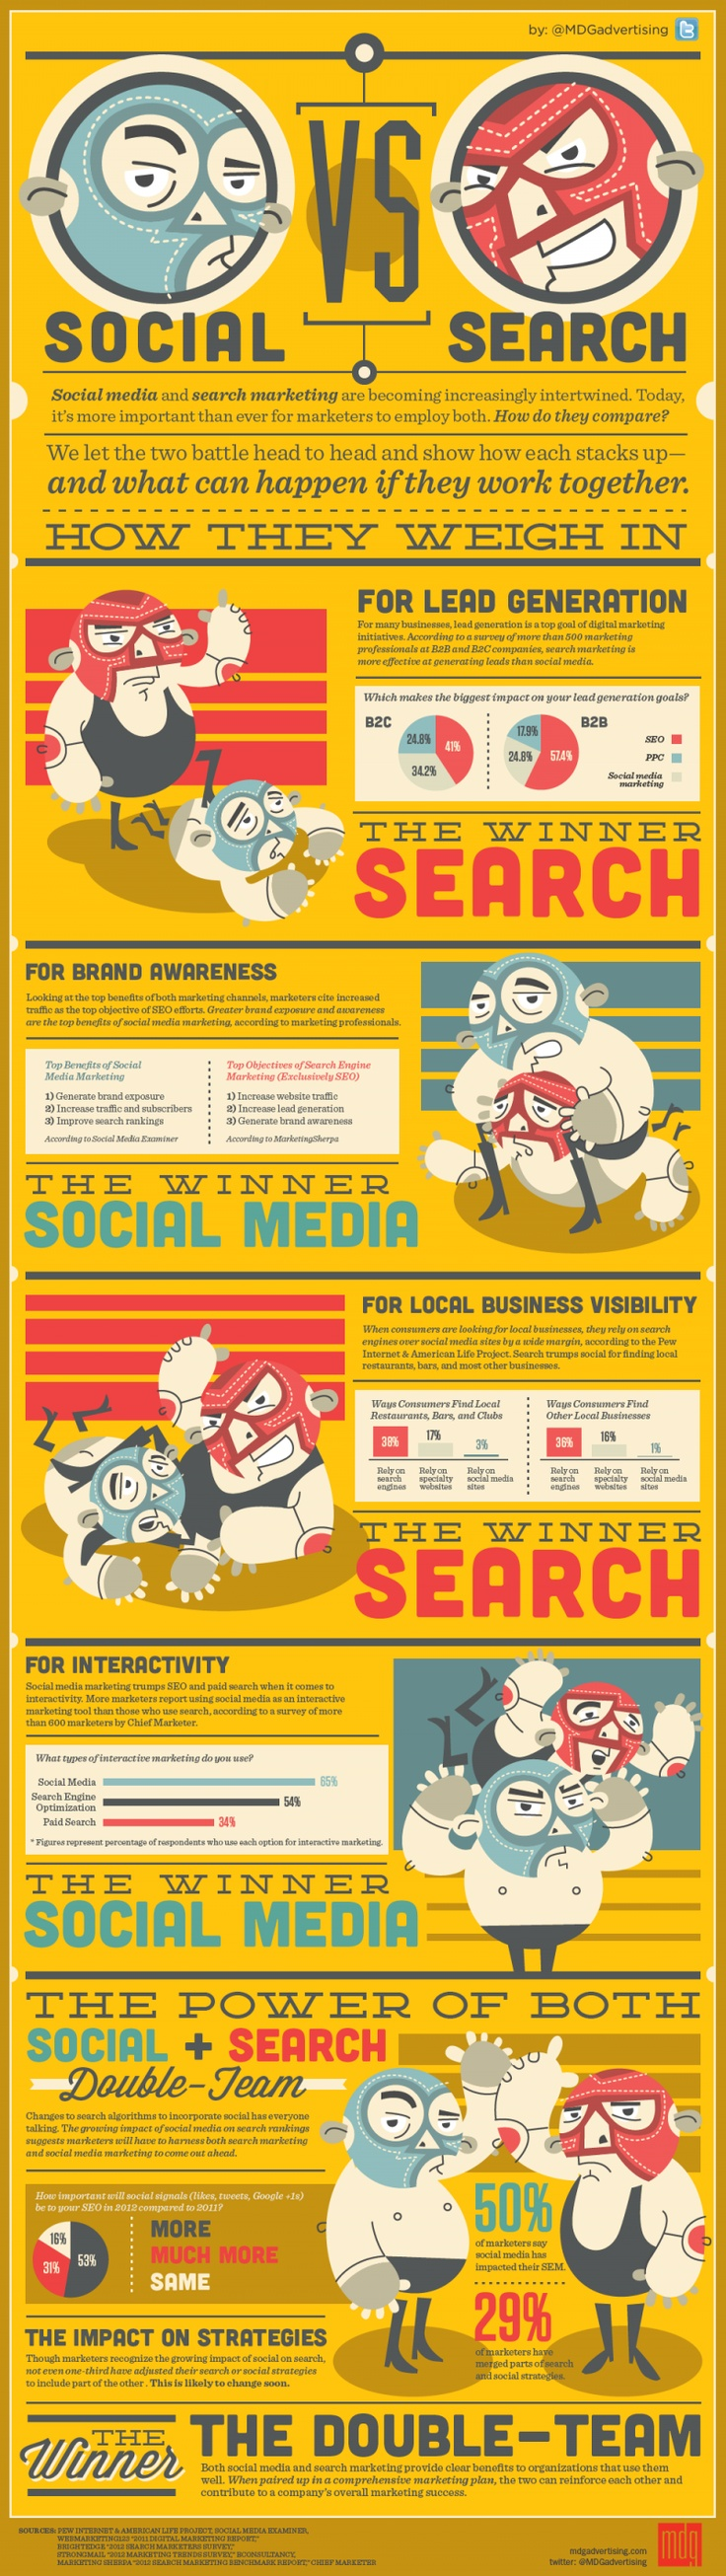 social versus search